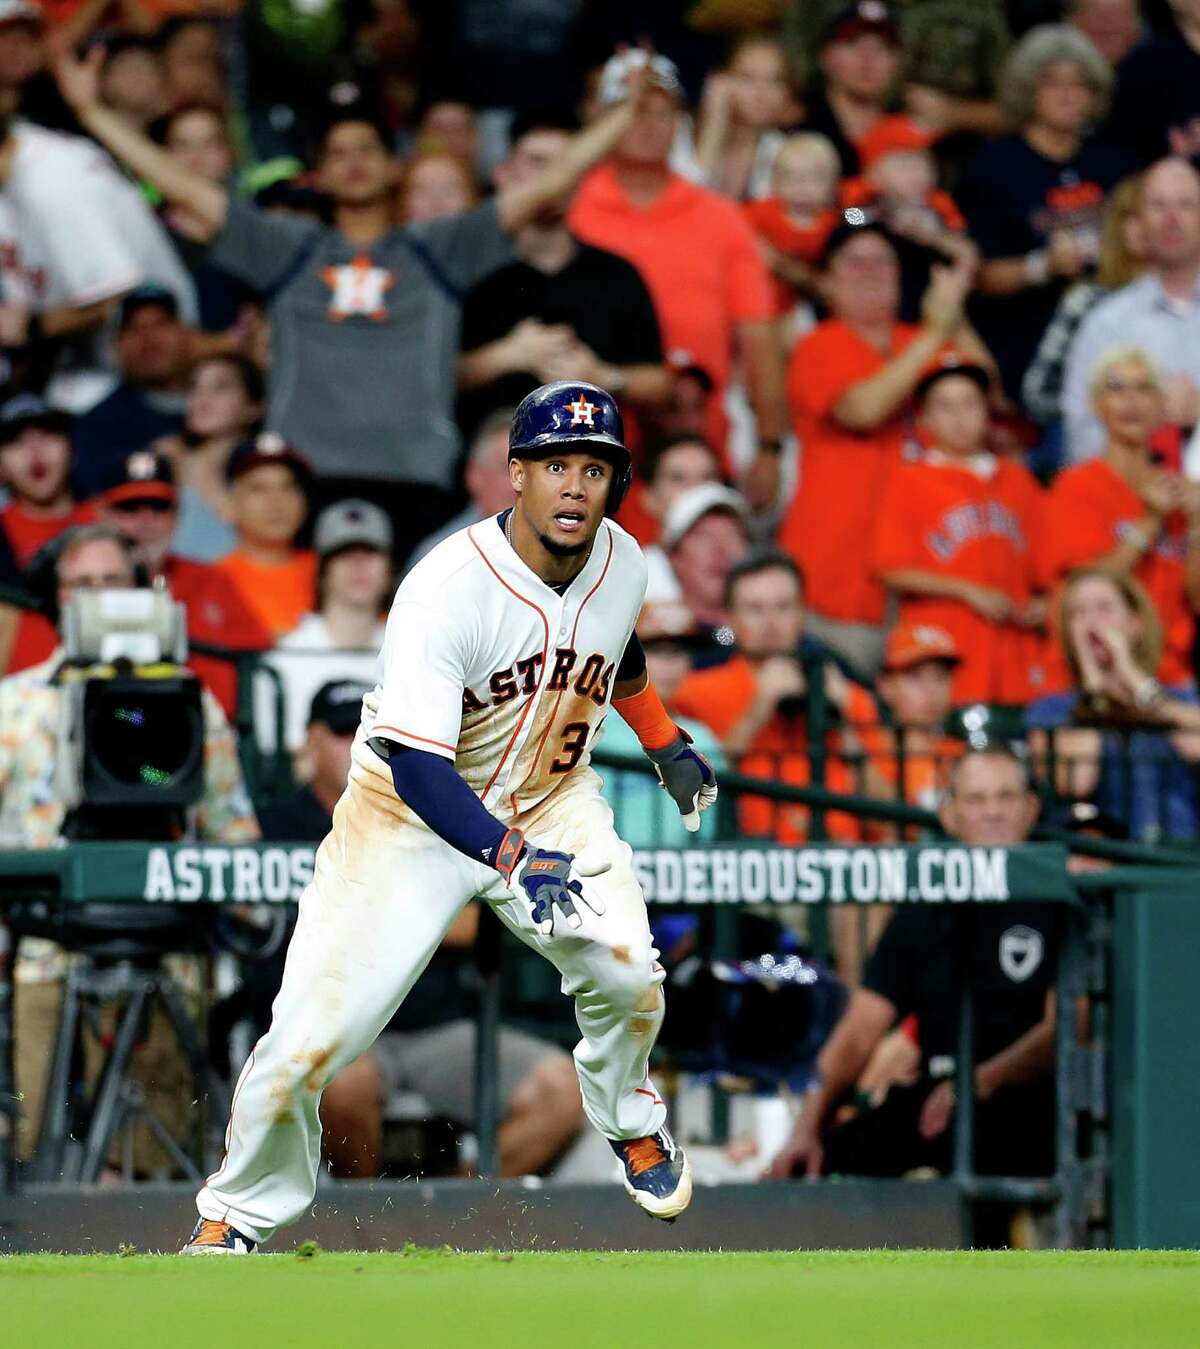 Houston Astros Carlos Gomez (30) tries to stop as he reached third base on a Luis Valbuena double during the third inning of an MLB baseball game at Minute Maid Park, Monday, June 20, 2016, in Houston.